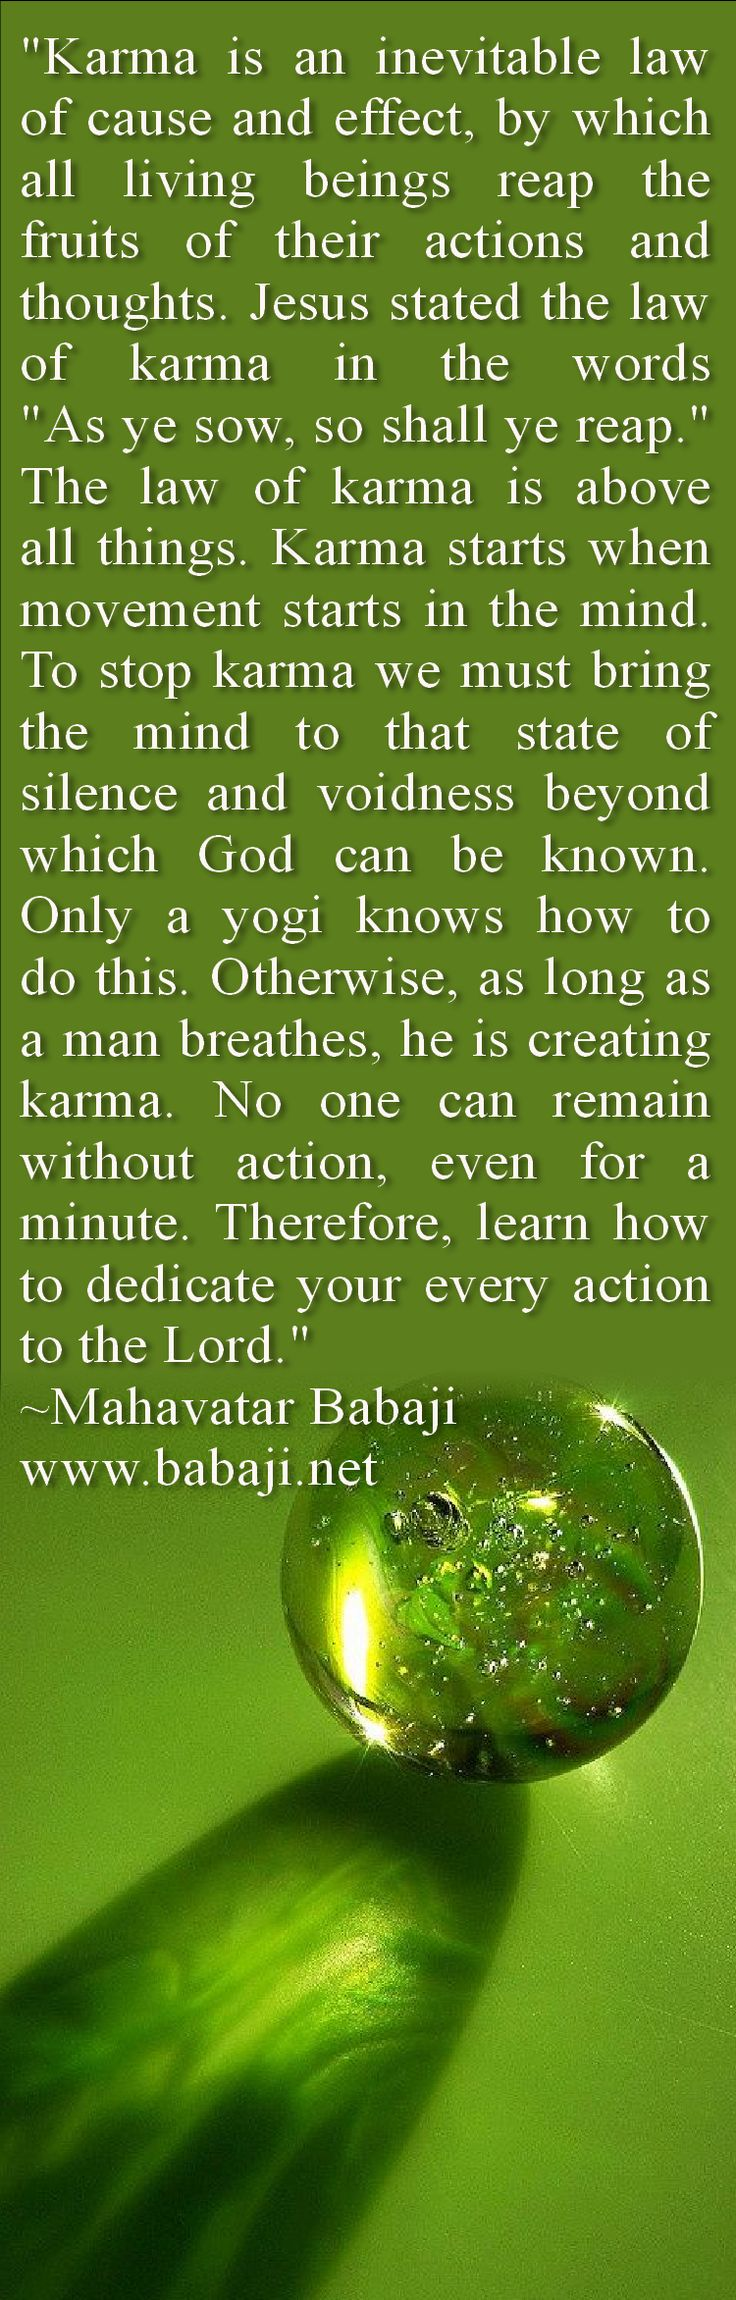 Mahavatar Babaji for Karma // http://www.babaji.net/index.php/teachings/quotes?start=15